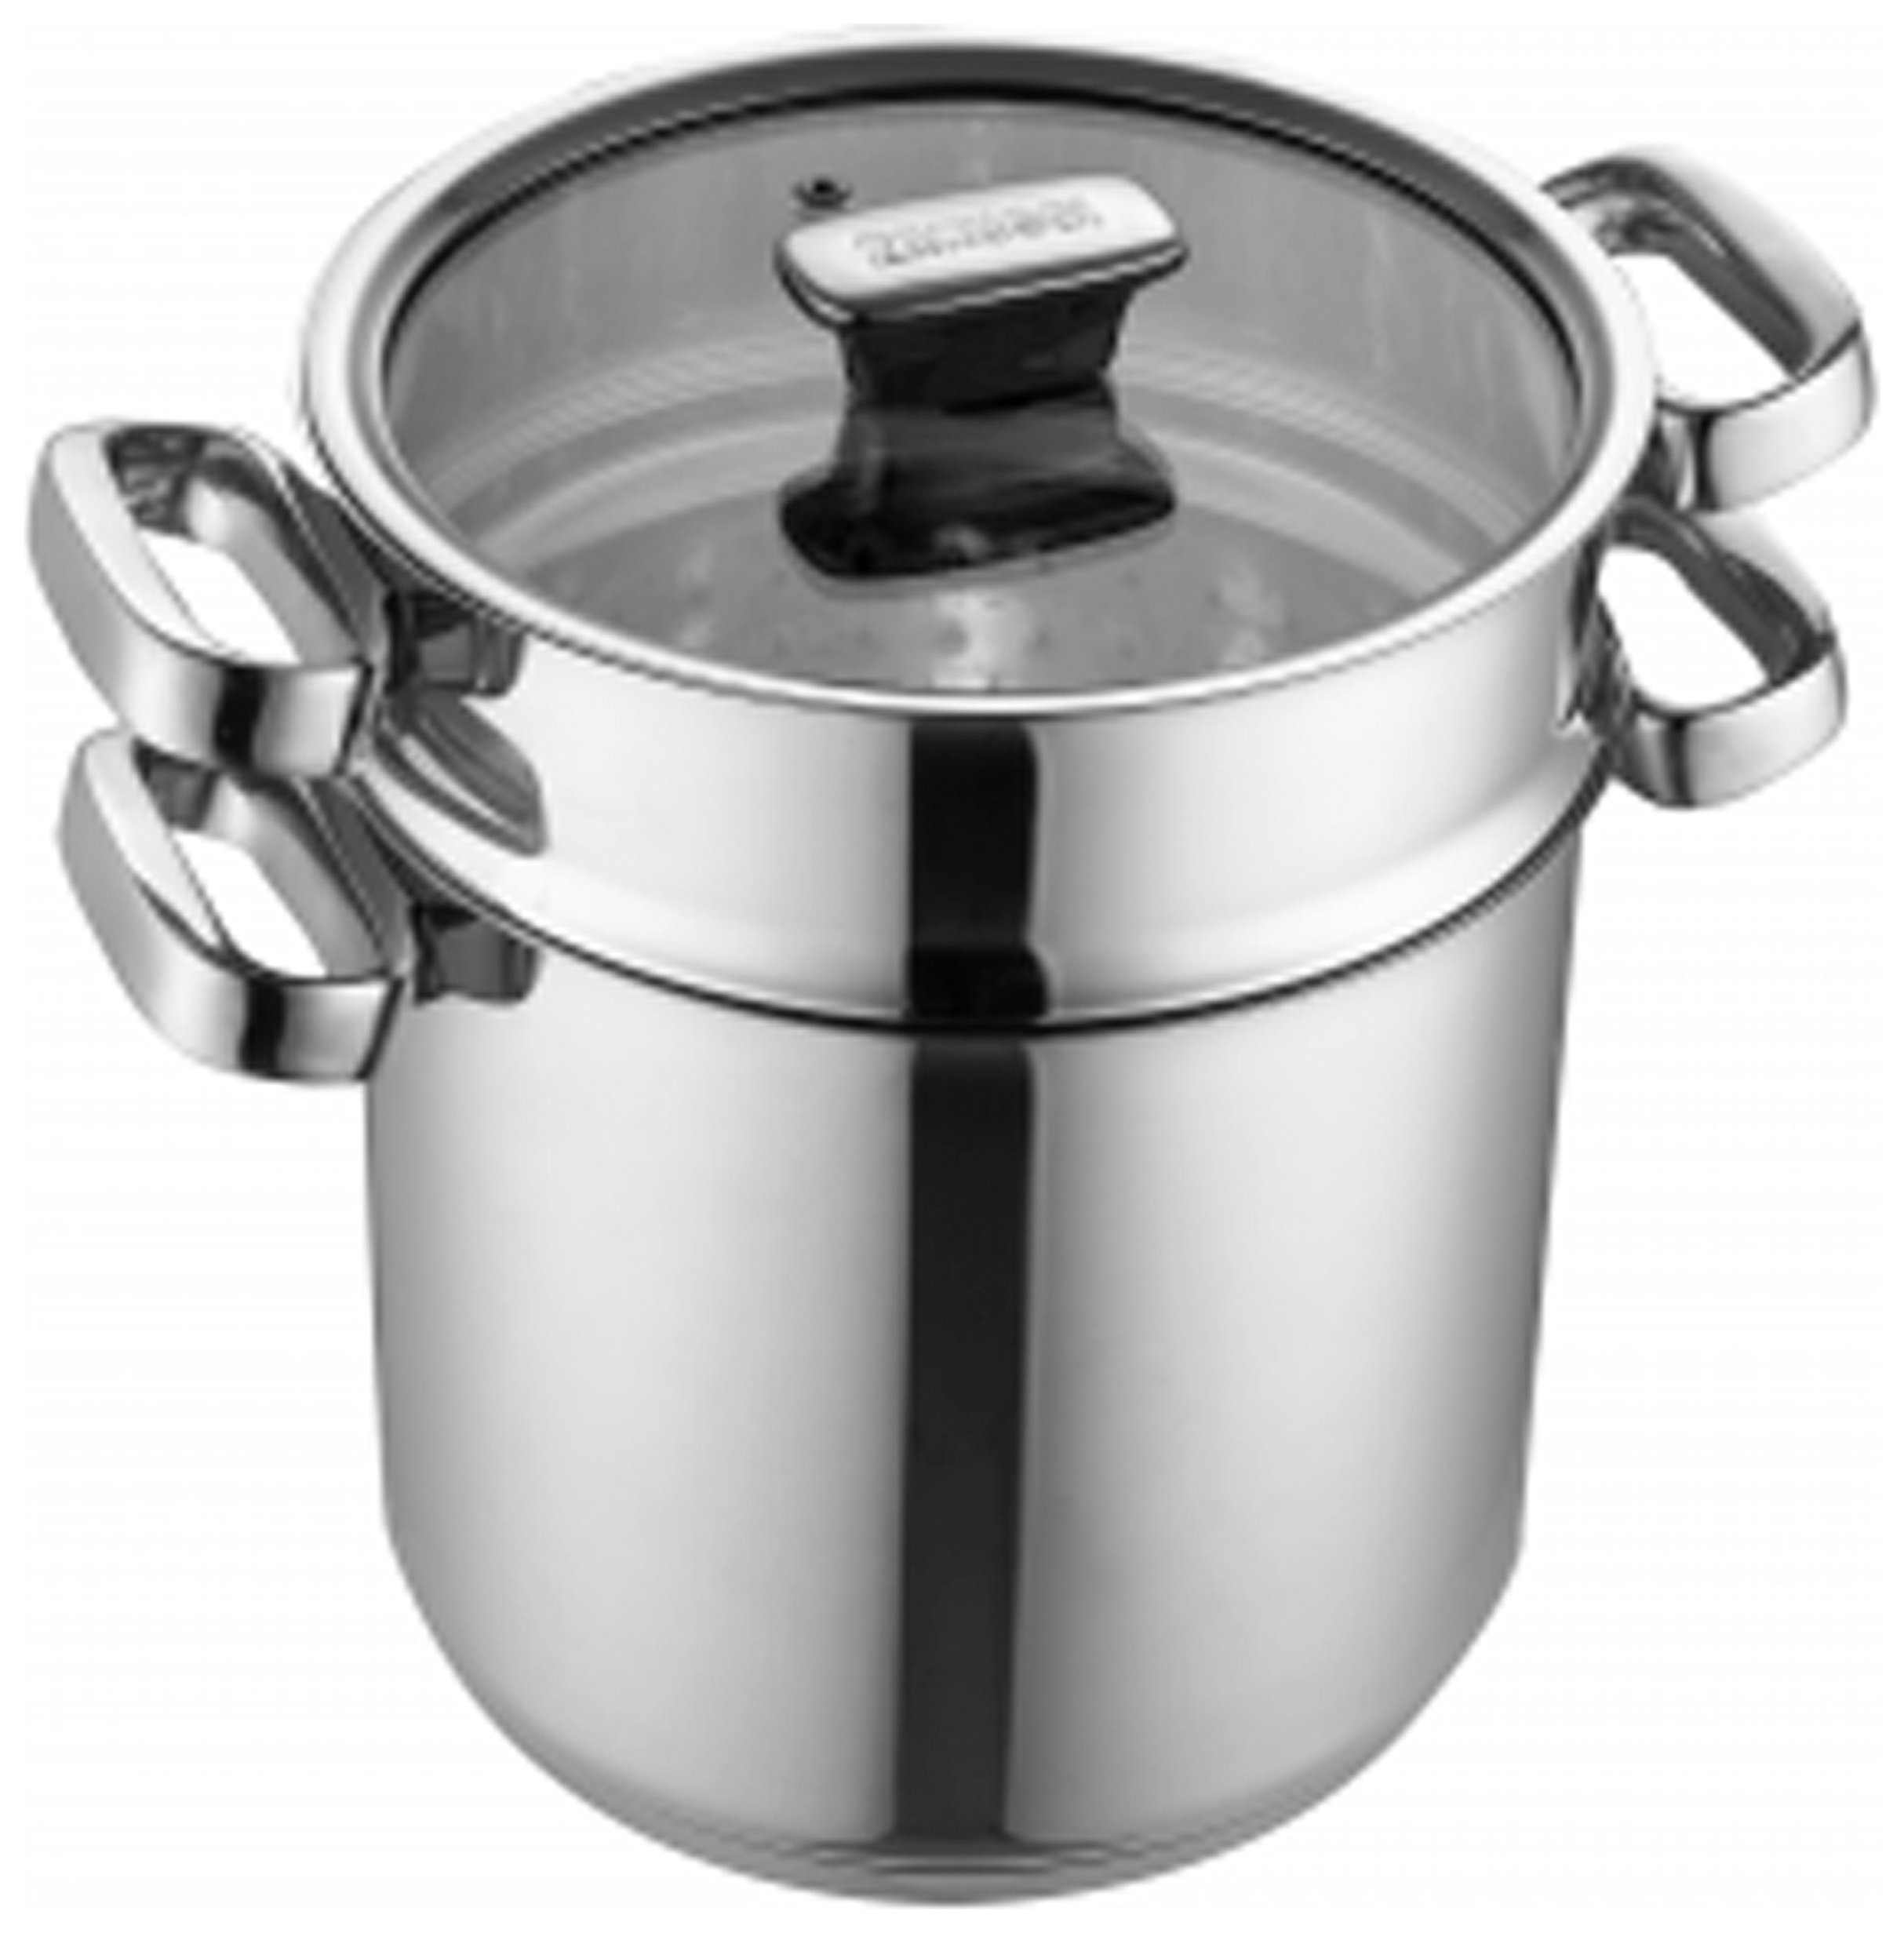 Zanussi Positano 20cm Stainless Steel Pasta Pot with Lid